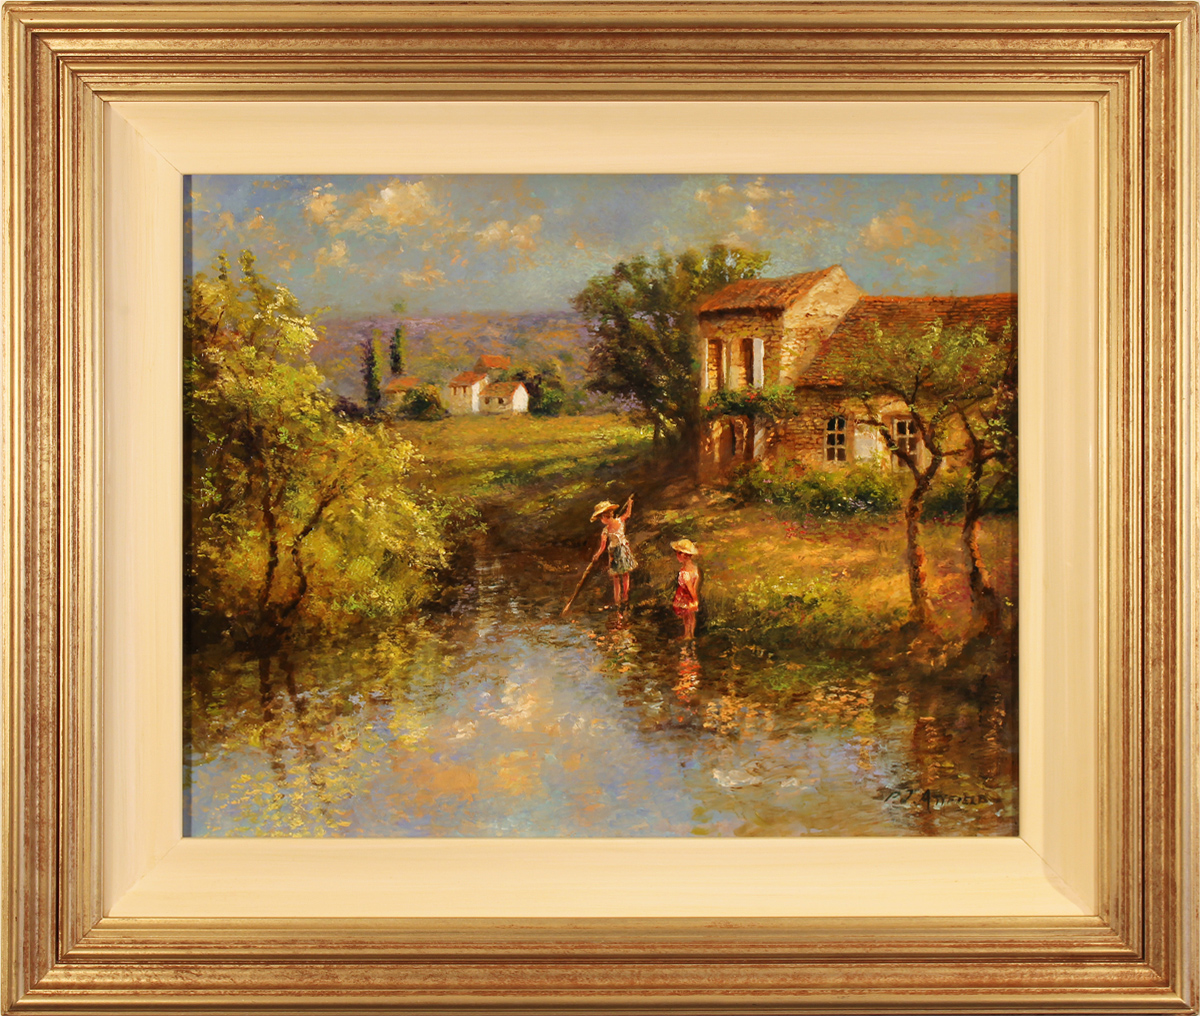 Paul Attfield, Original oil painting on panel, Child's Play, click to enlarge